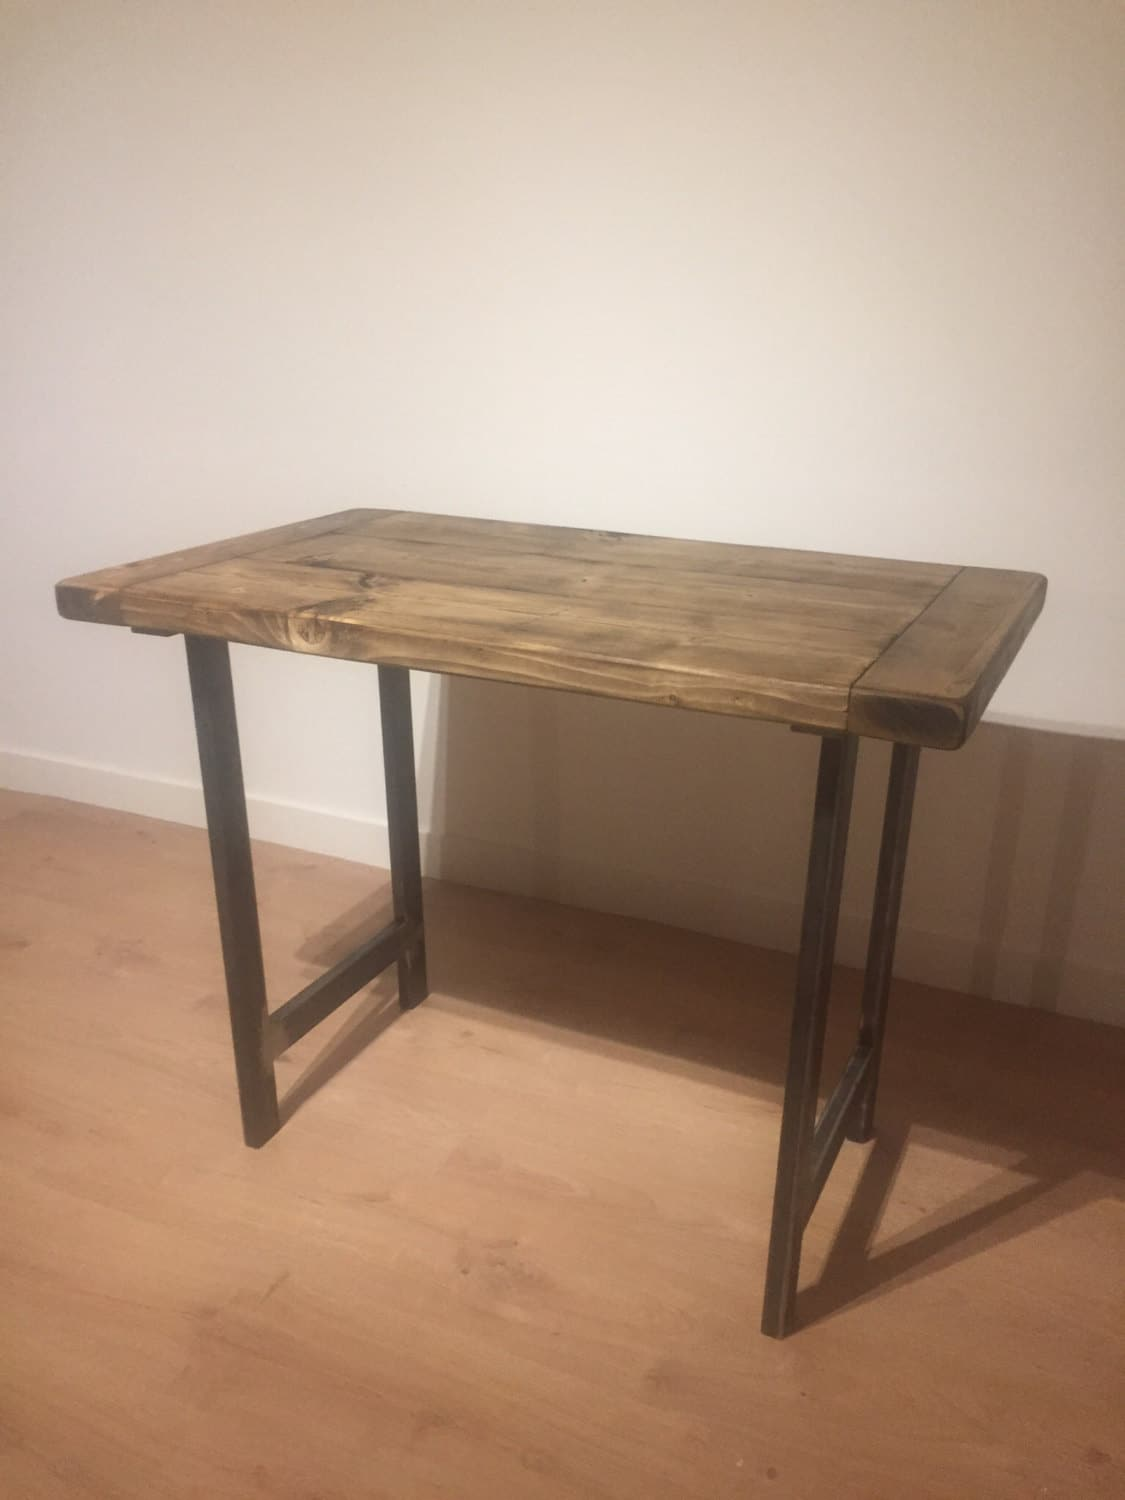 Rustic Solid Pine Desk With Graded Steel Legs